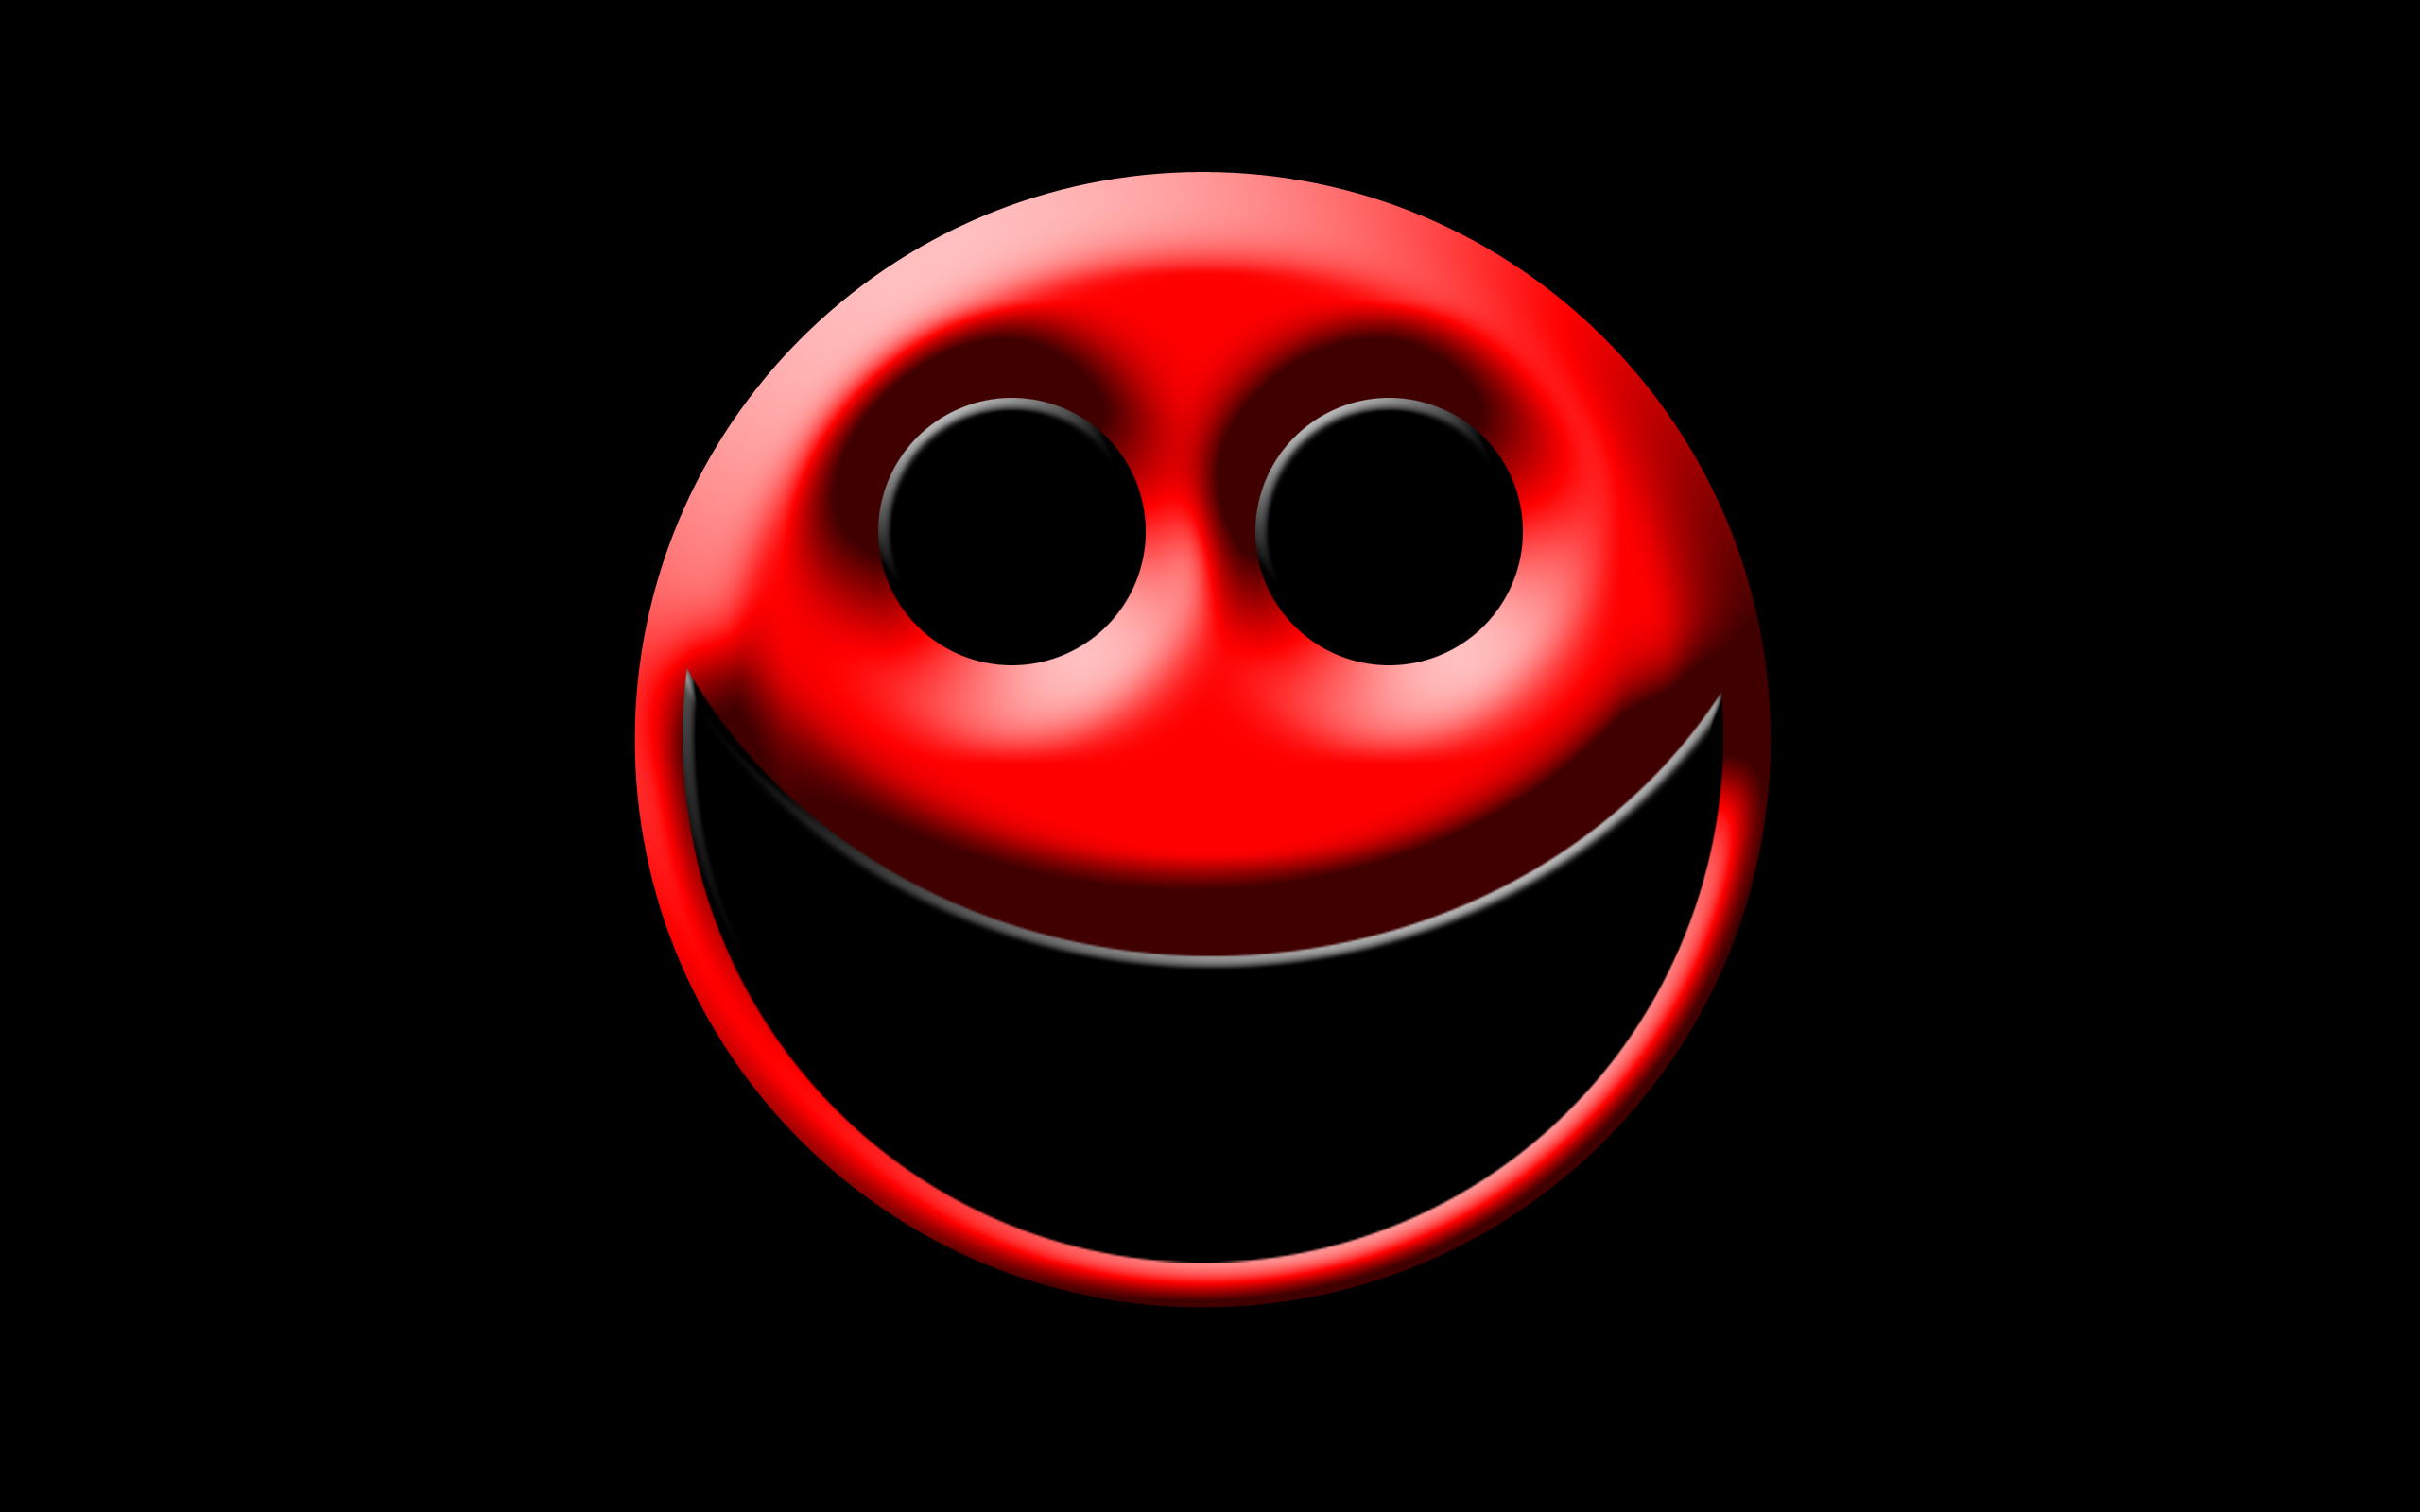 Smiley full hd wallpaper and background image 2560x1600 id219653 humor smiley wallpaper altavistaventures Images